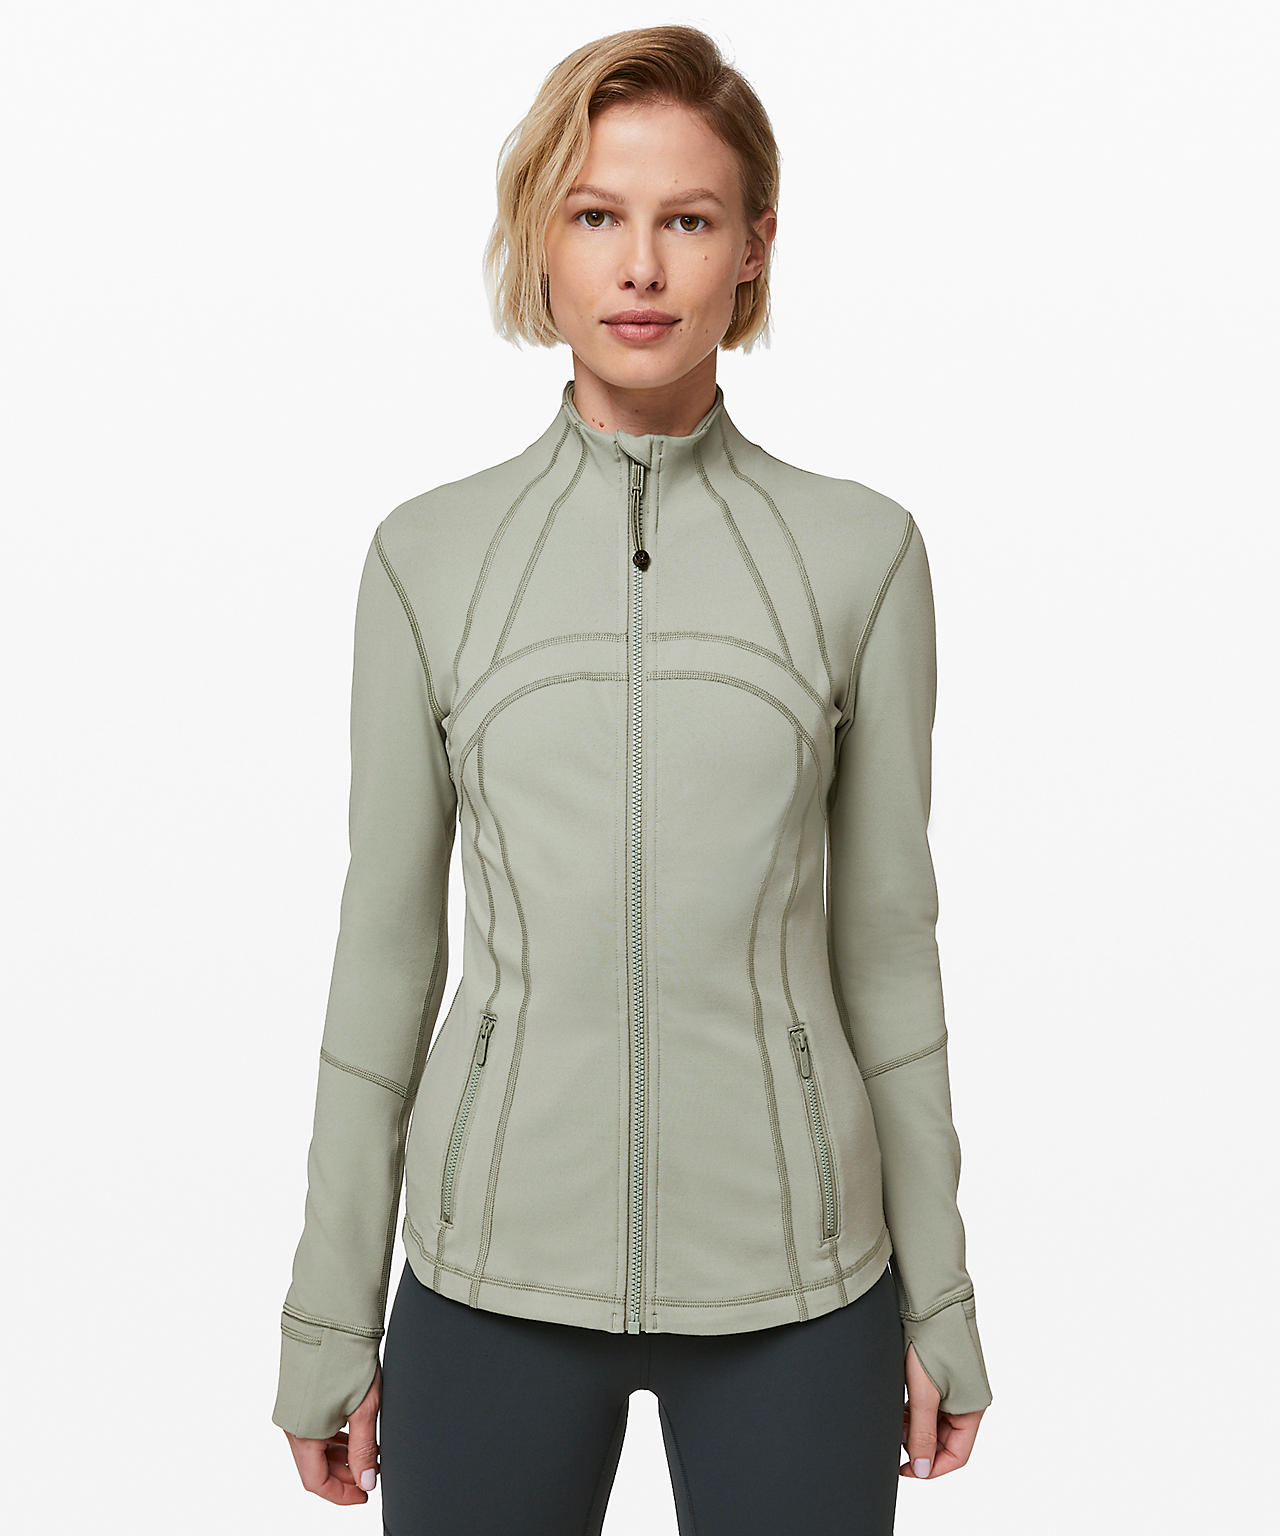 Define Jacket, Sea Moss, Lululemon Upload